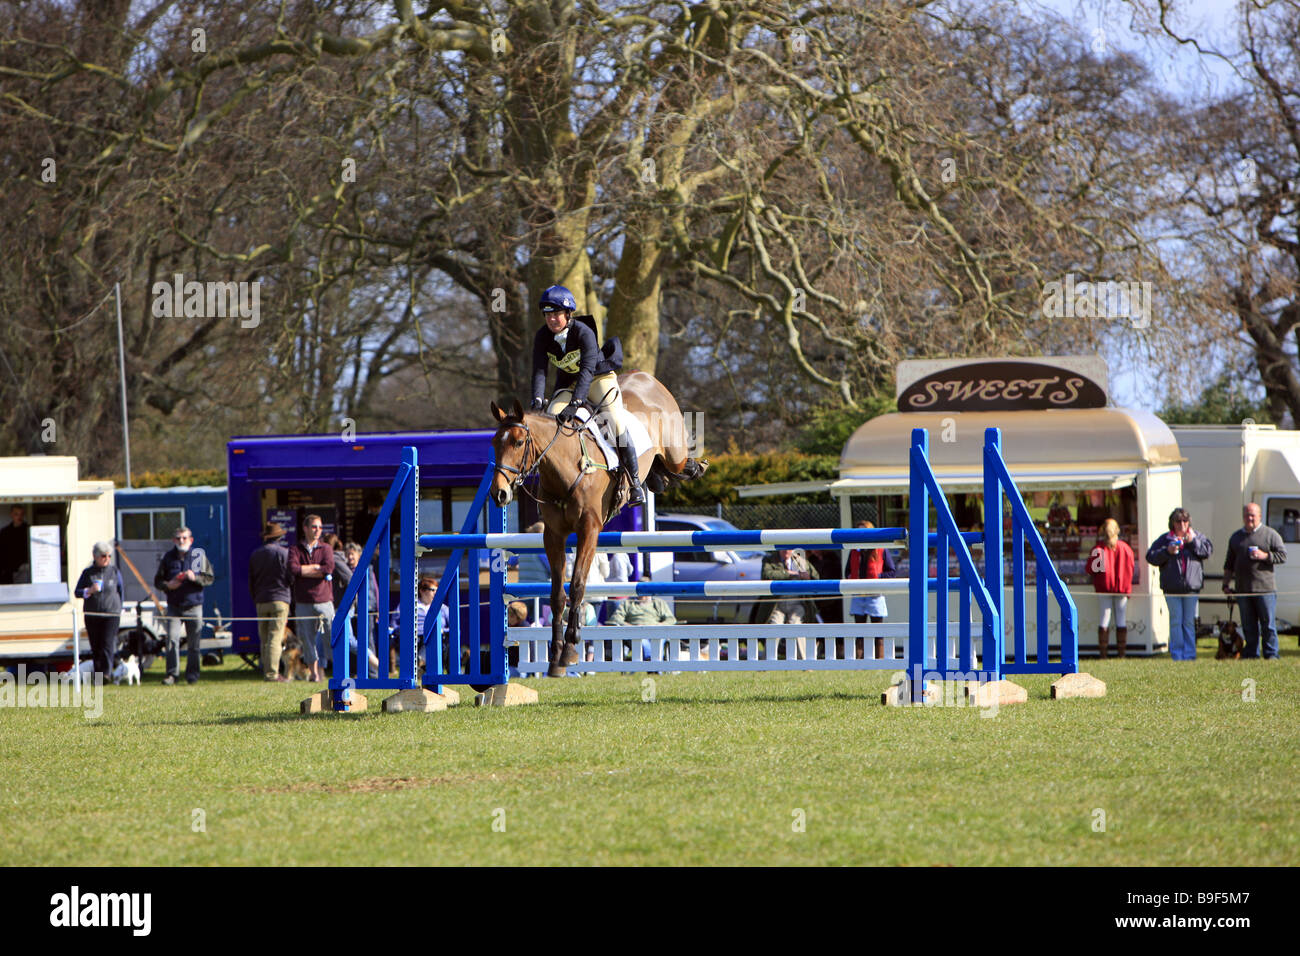 Female rider at a Horse Show Jumping event in rural England - Stock Image